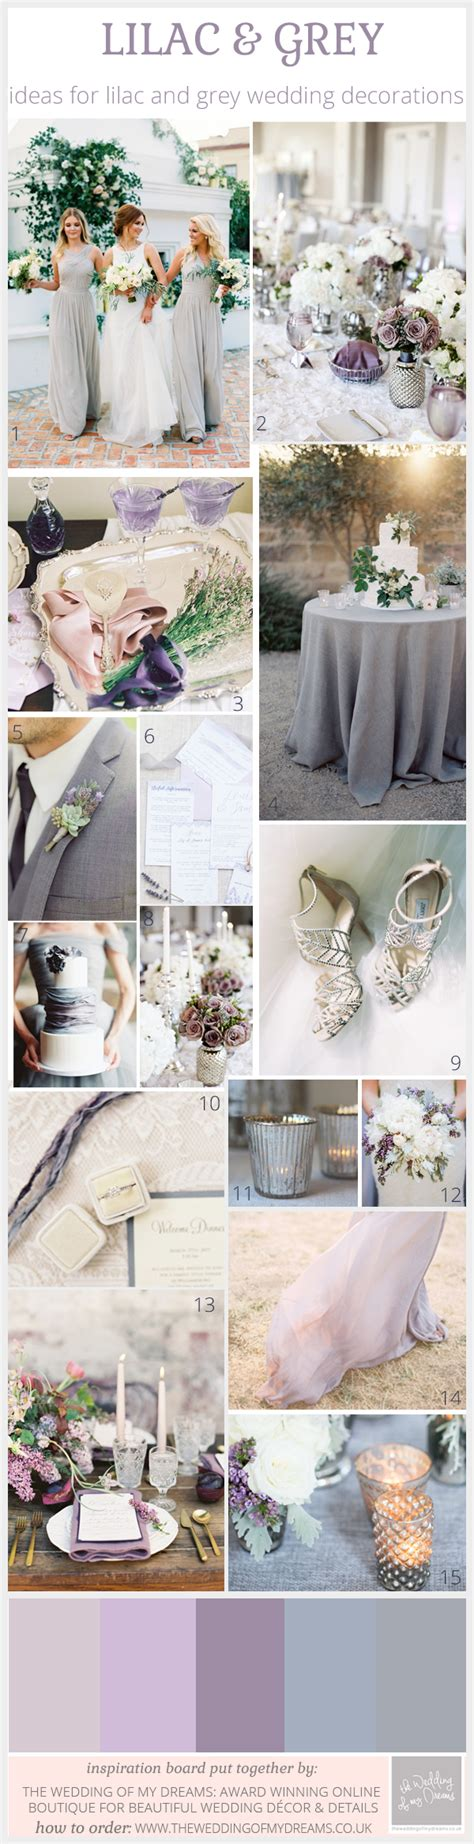 grey theme chic lilac and grey wedding theme inspiration